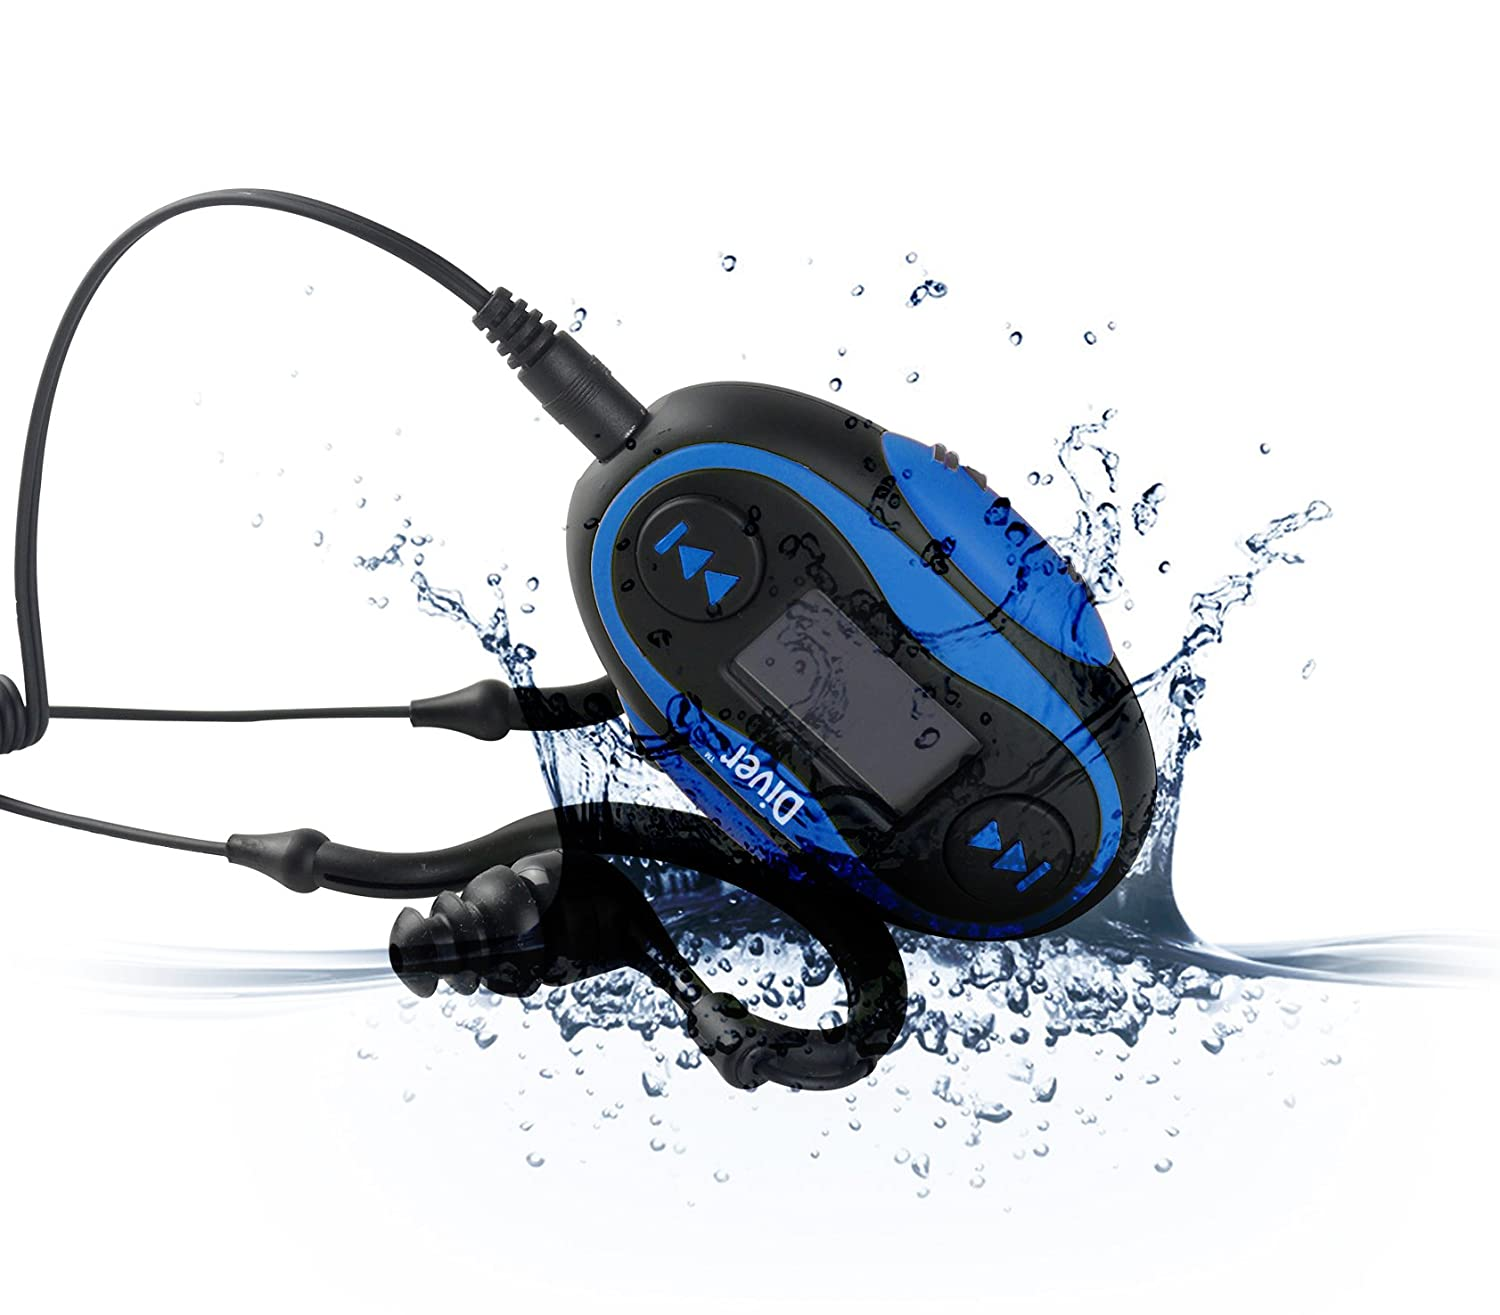 Top 10 Best Waterproof MP3 Players for Swimming (2020 Reviews) 6